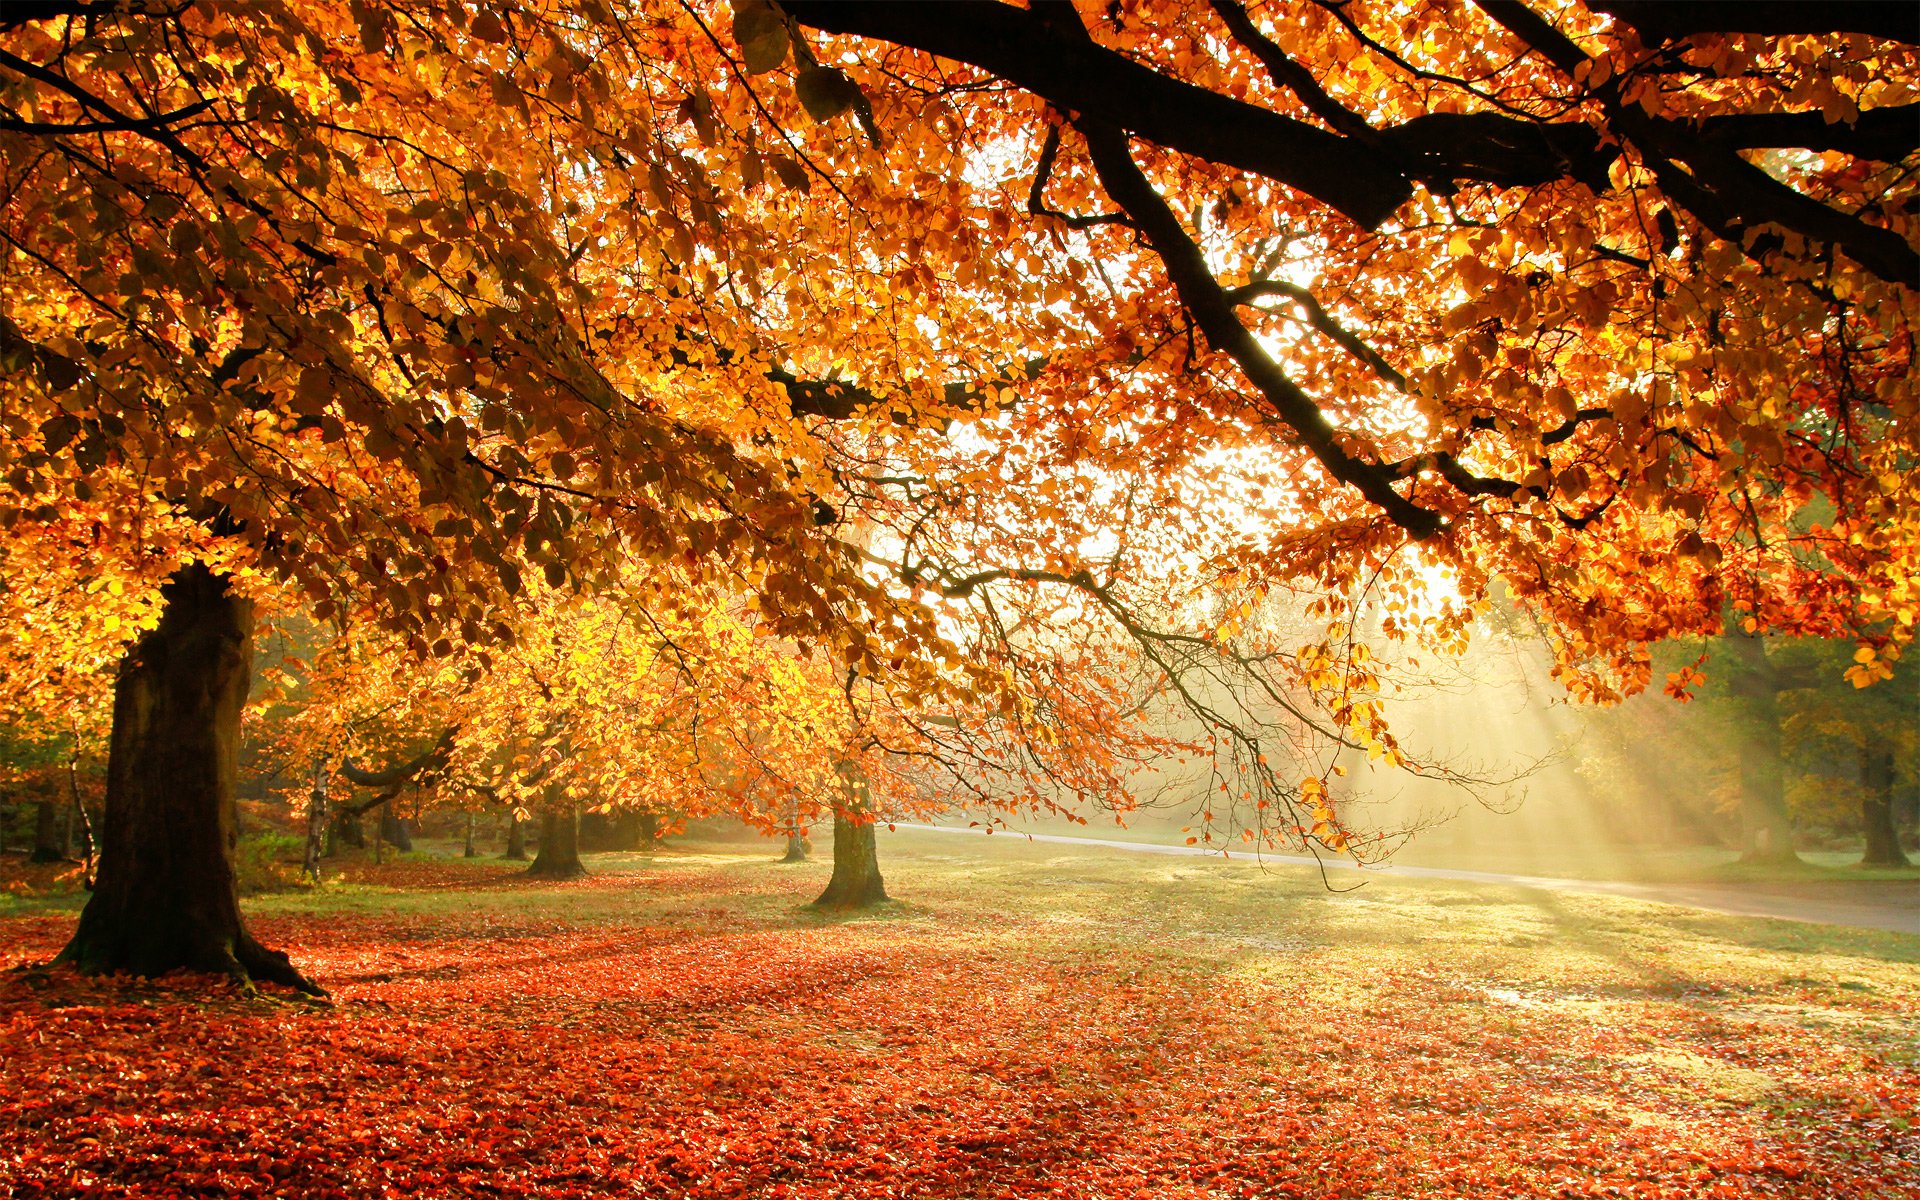 Gallery For gt Beautiful Fall Tree Backgrounds 1920x1200